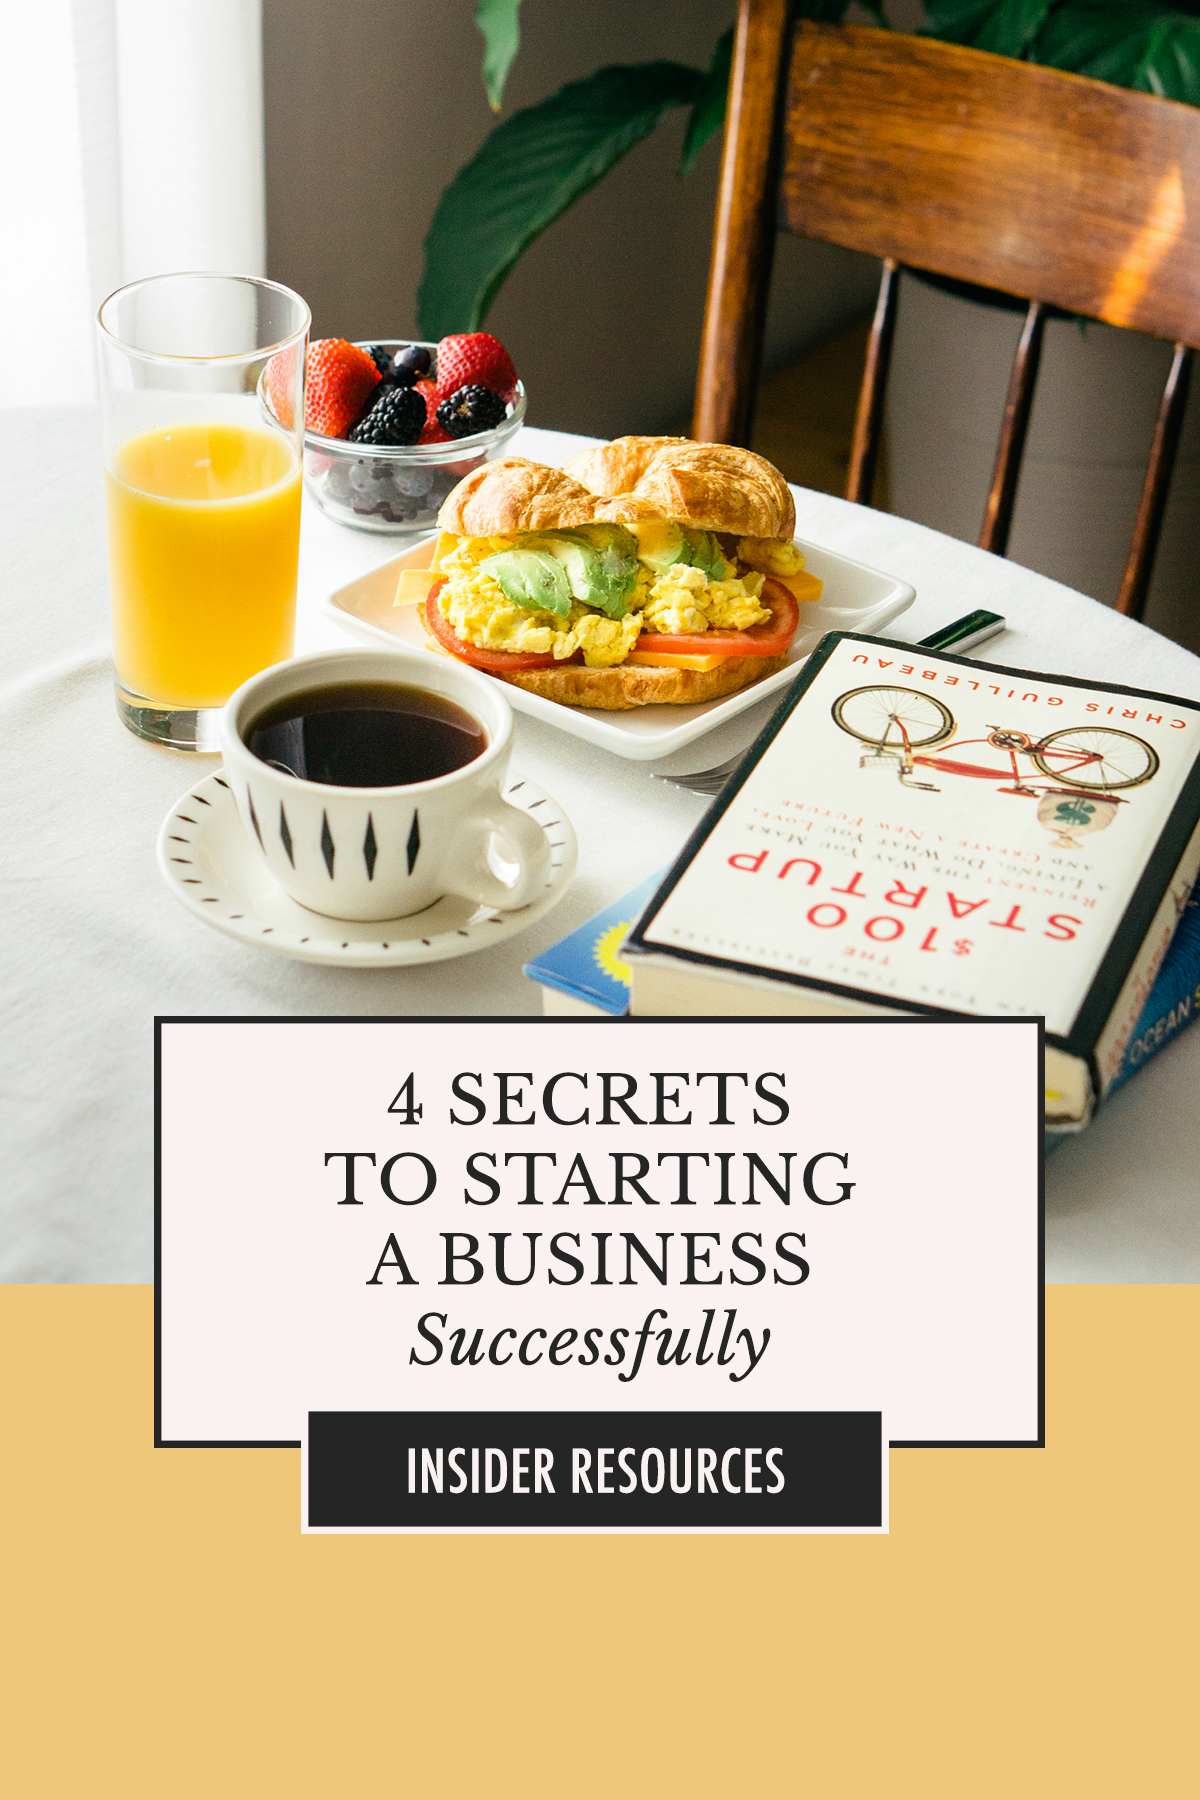 Are you afraid to launch, or did your business plateau after the first year? Here are some affordable steps to try to change that! | 4 Secrets to Starting a Business Successfully | Alexis The Greek blog